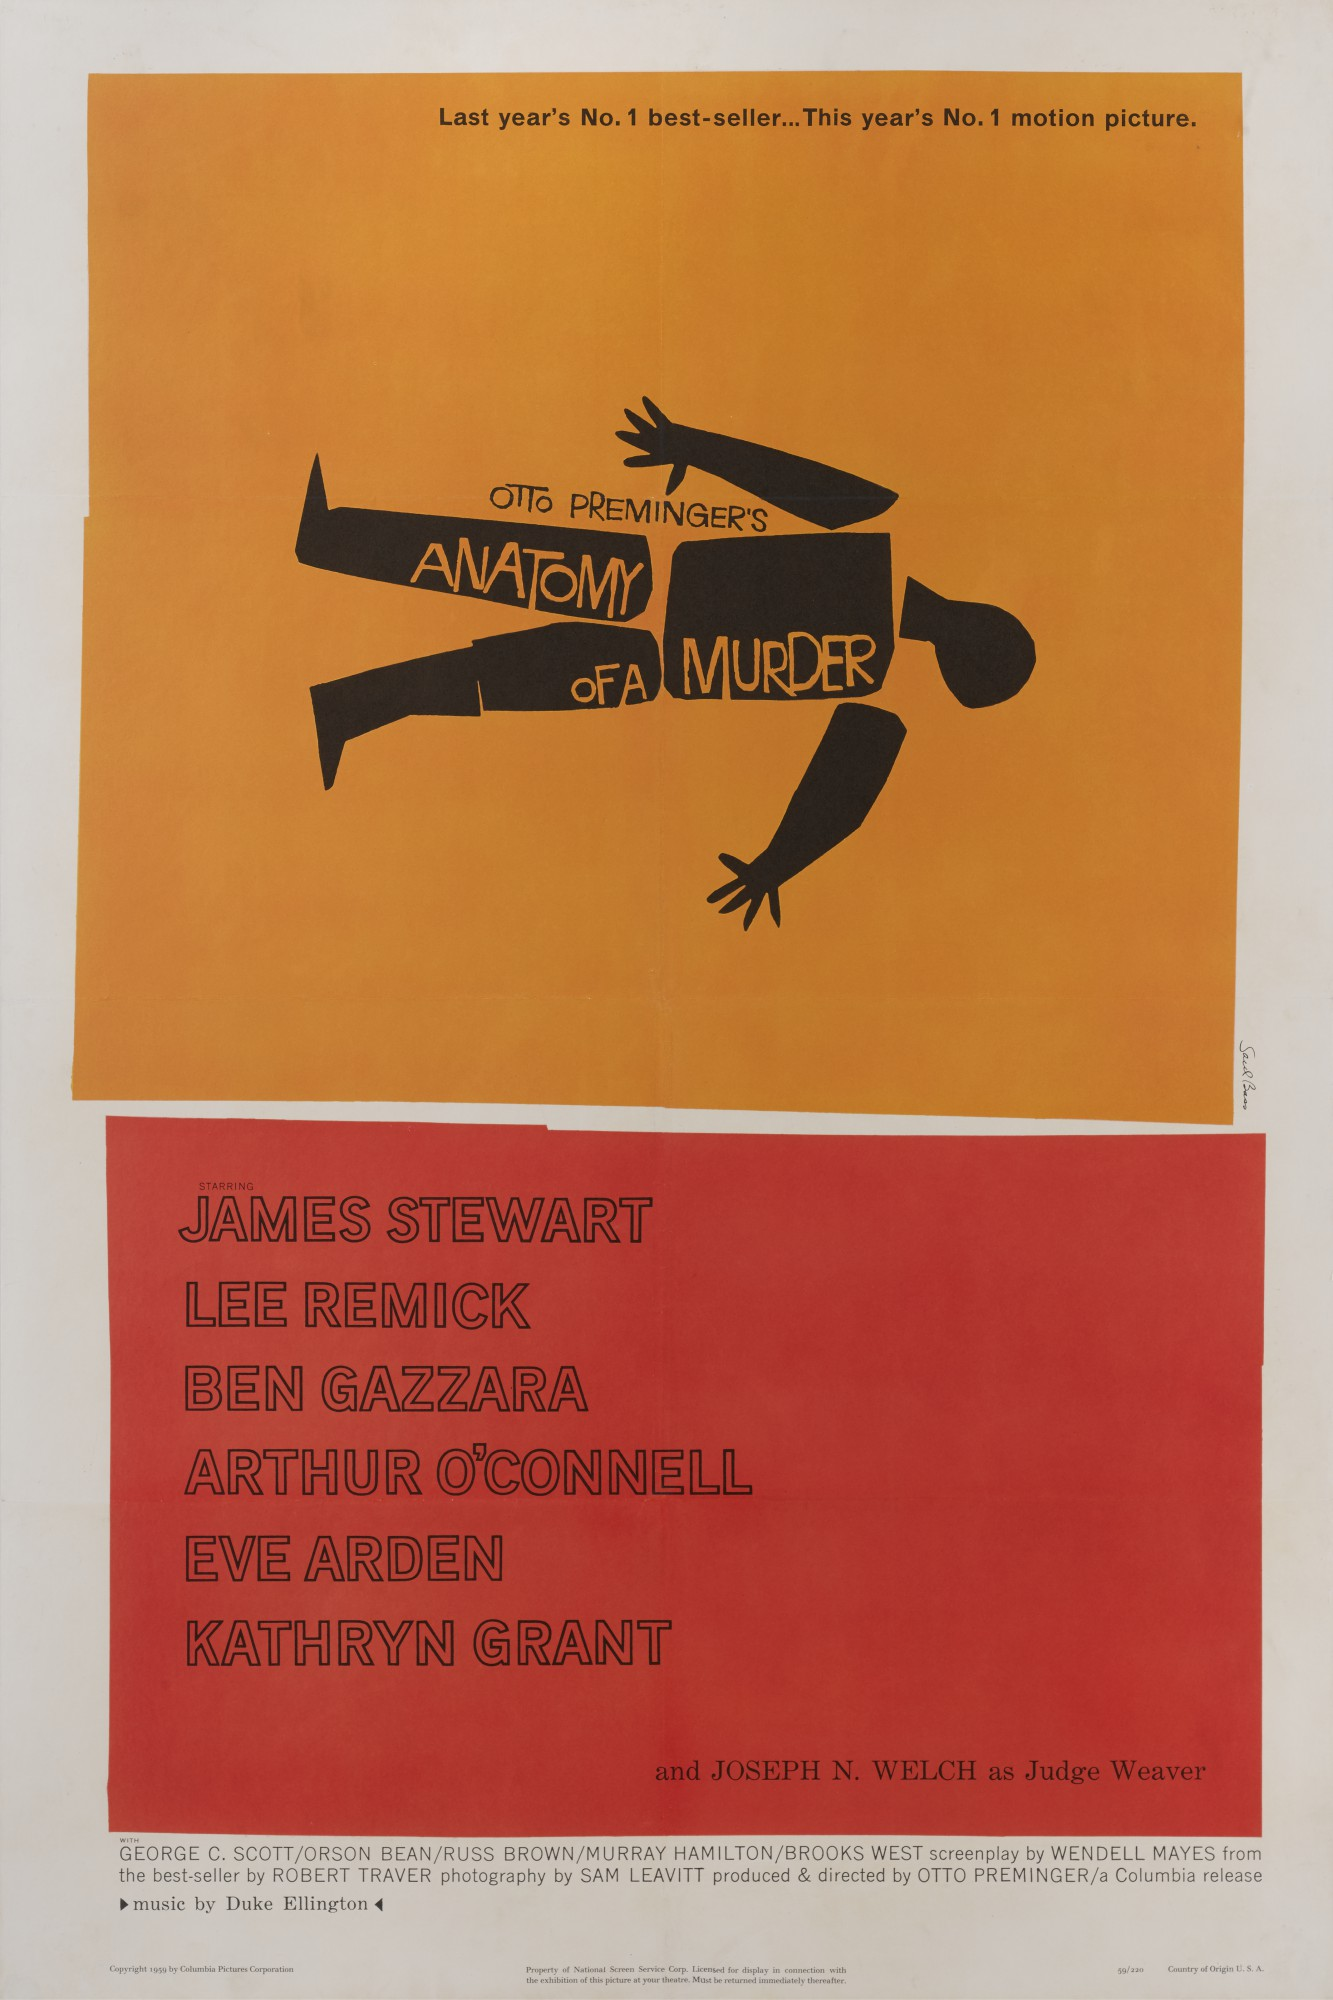 ANATOMY OF A MURDER (1959) POSTER, US